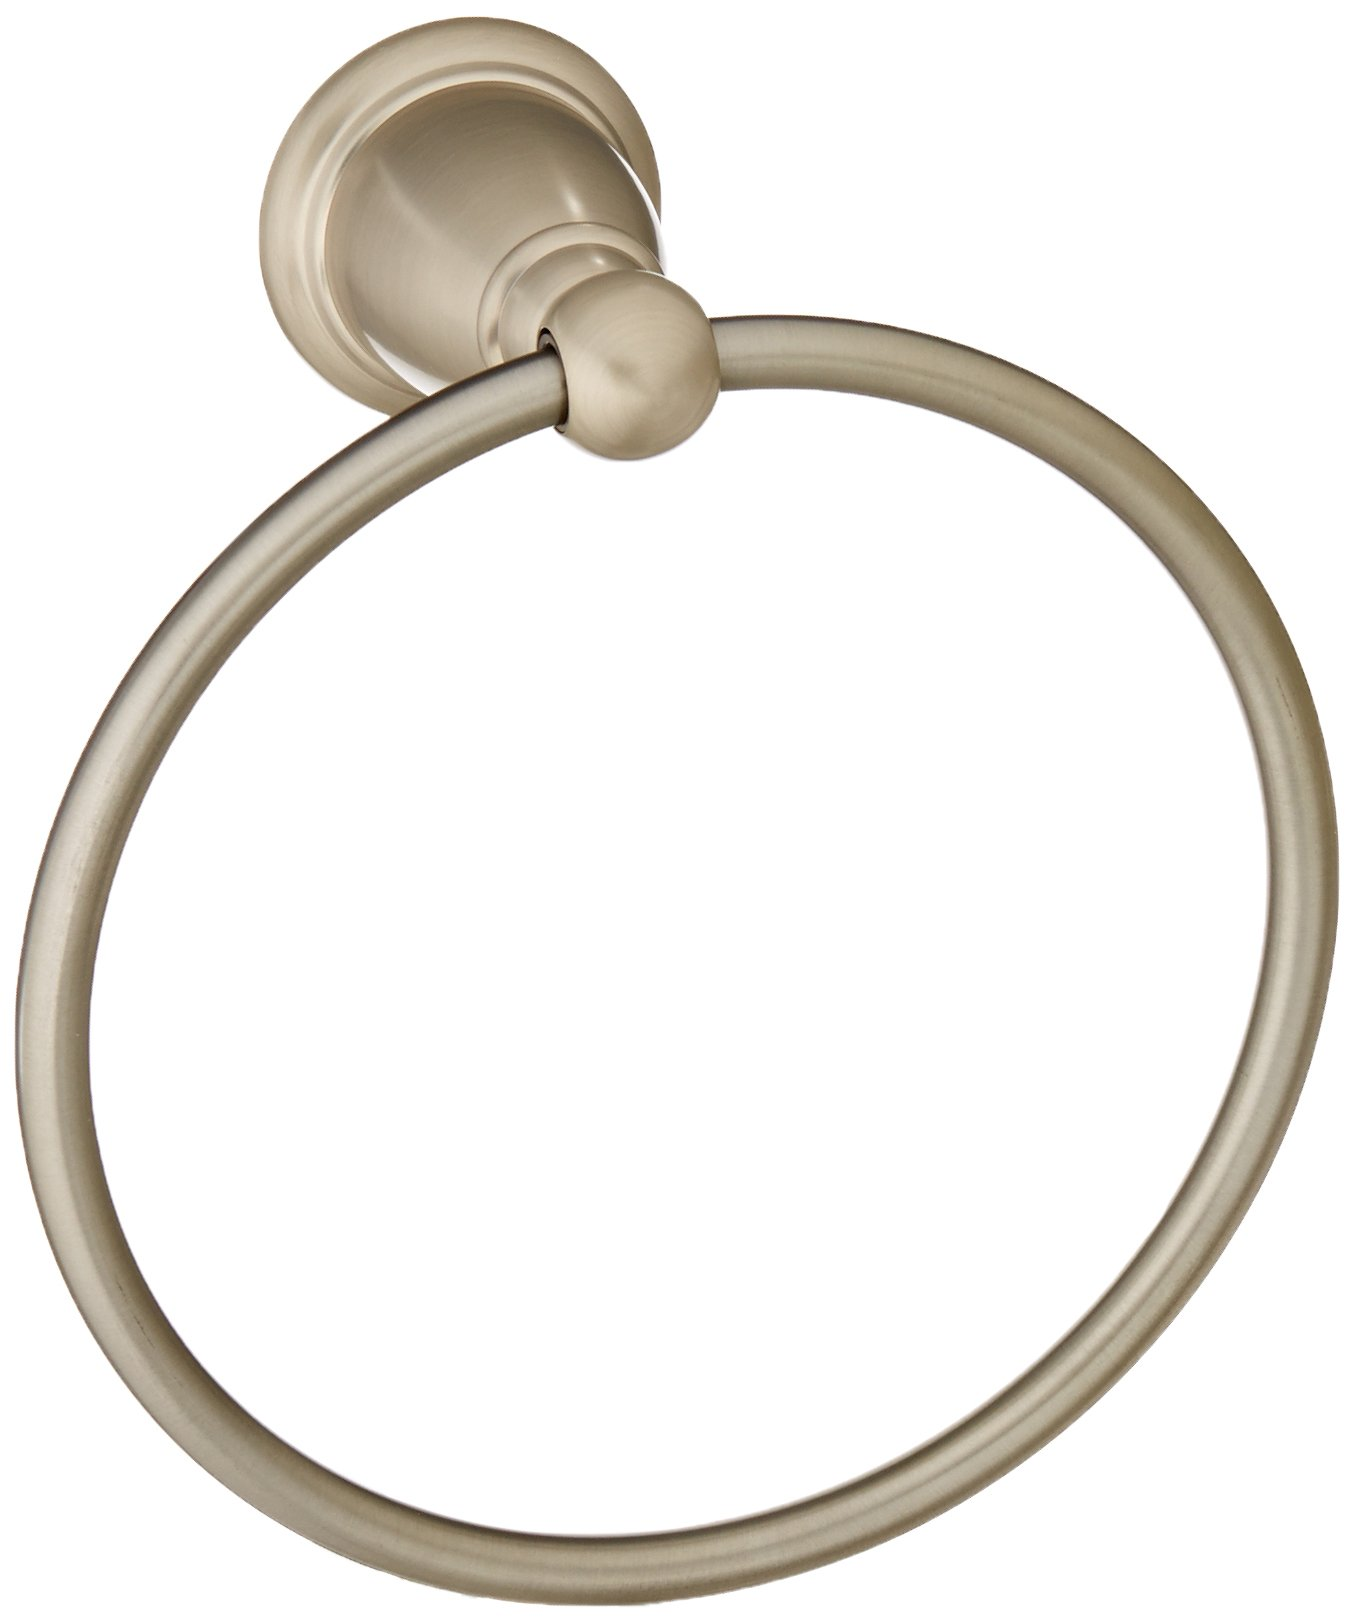 Moen YB2286BN Brantford Bathroom Towel Ring, Brushed Nickel by Moen